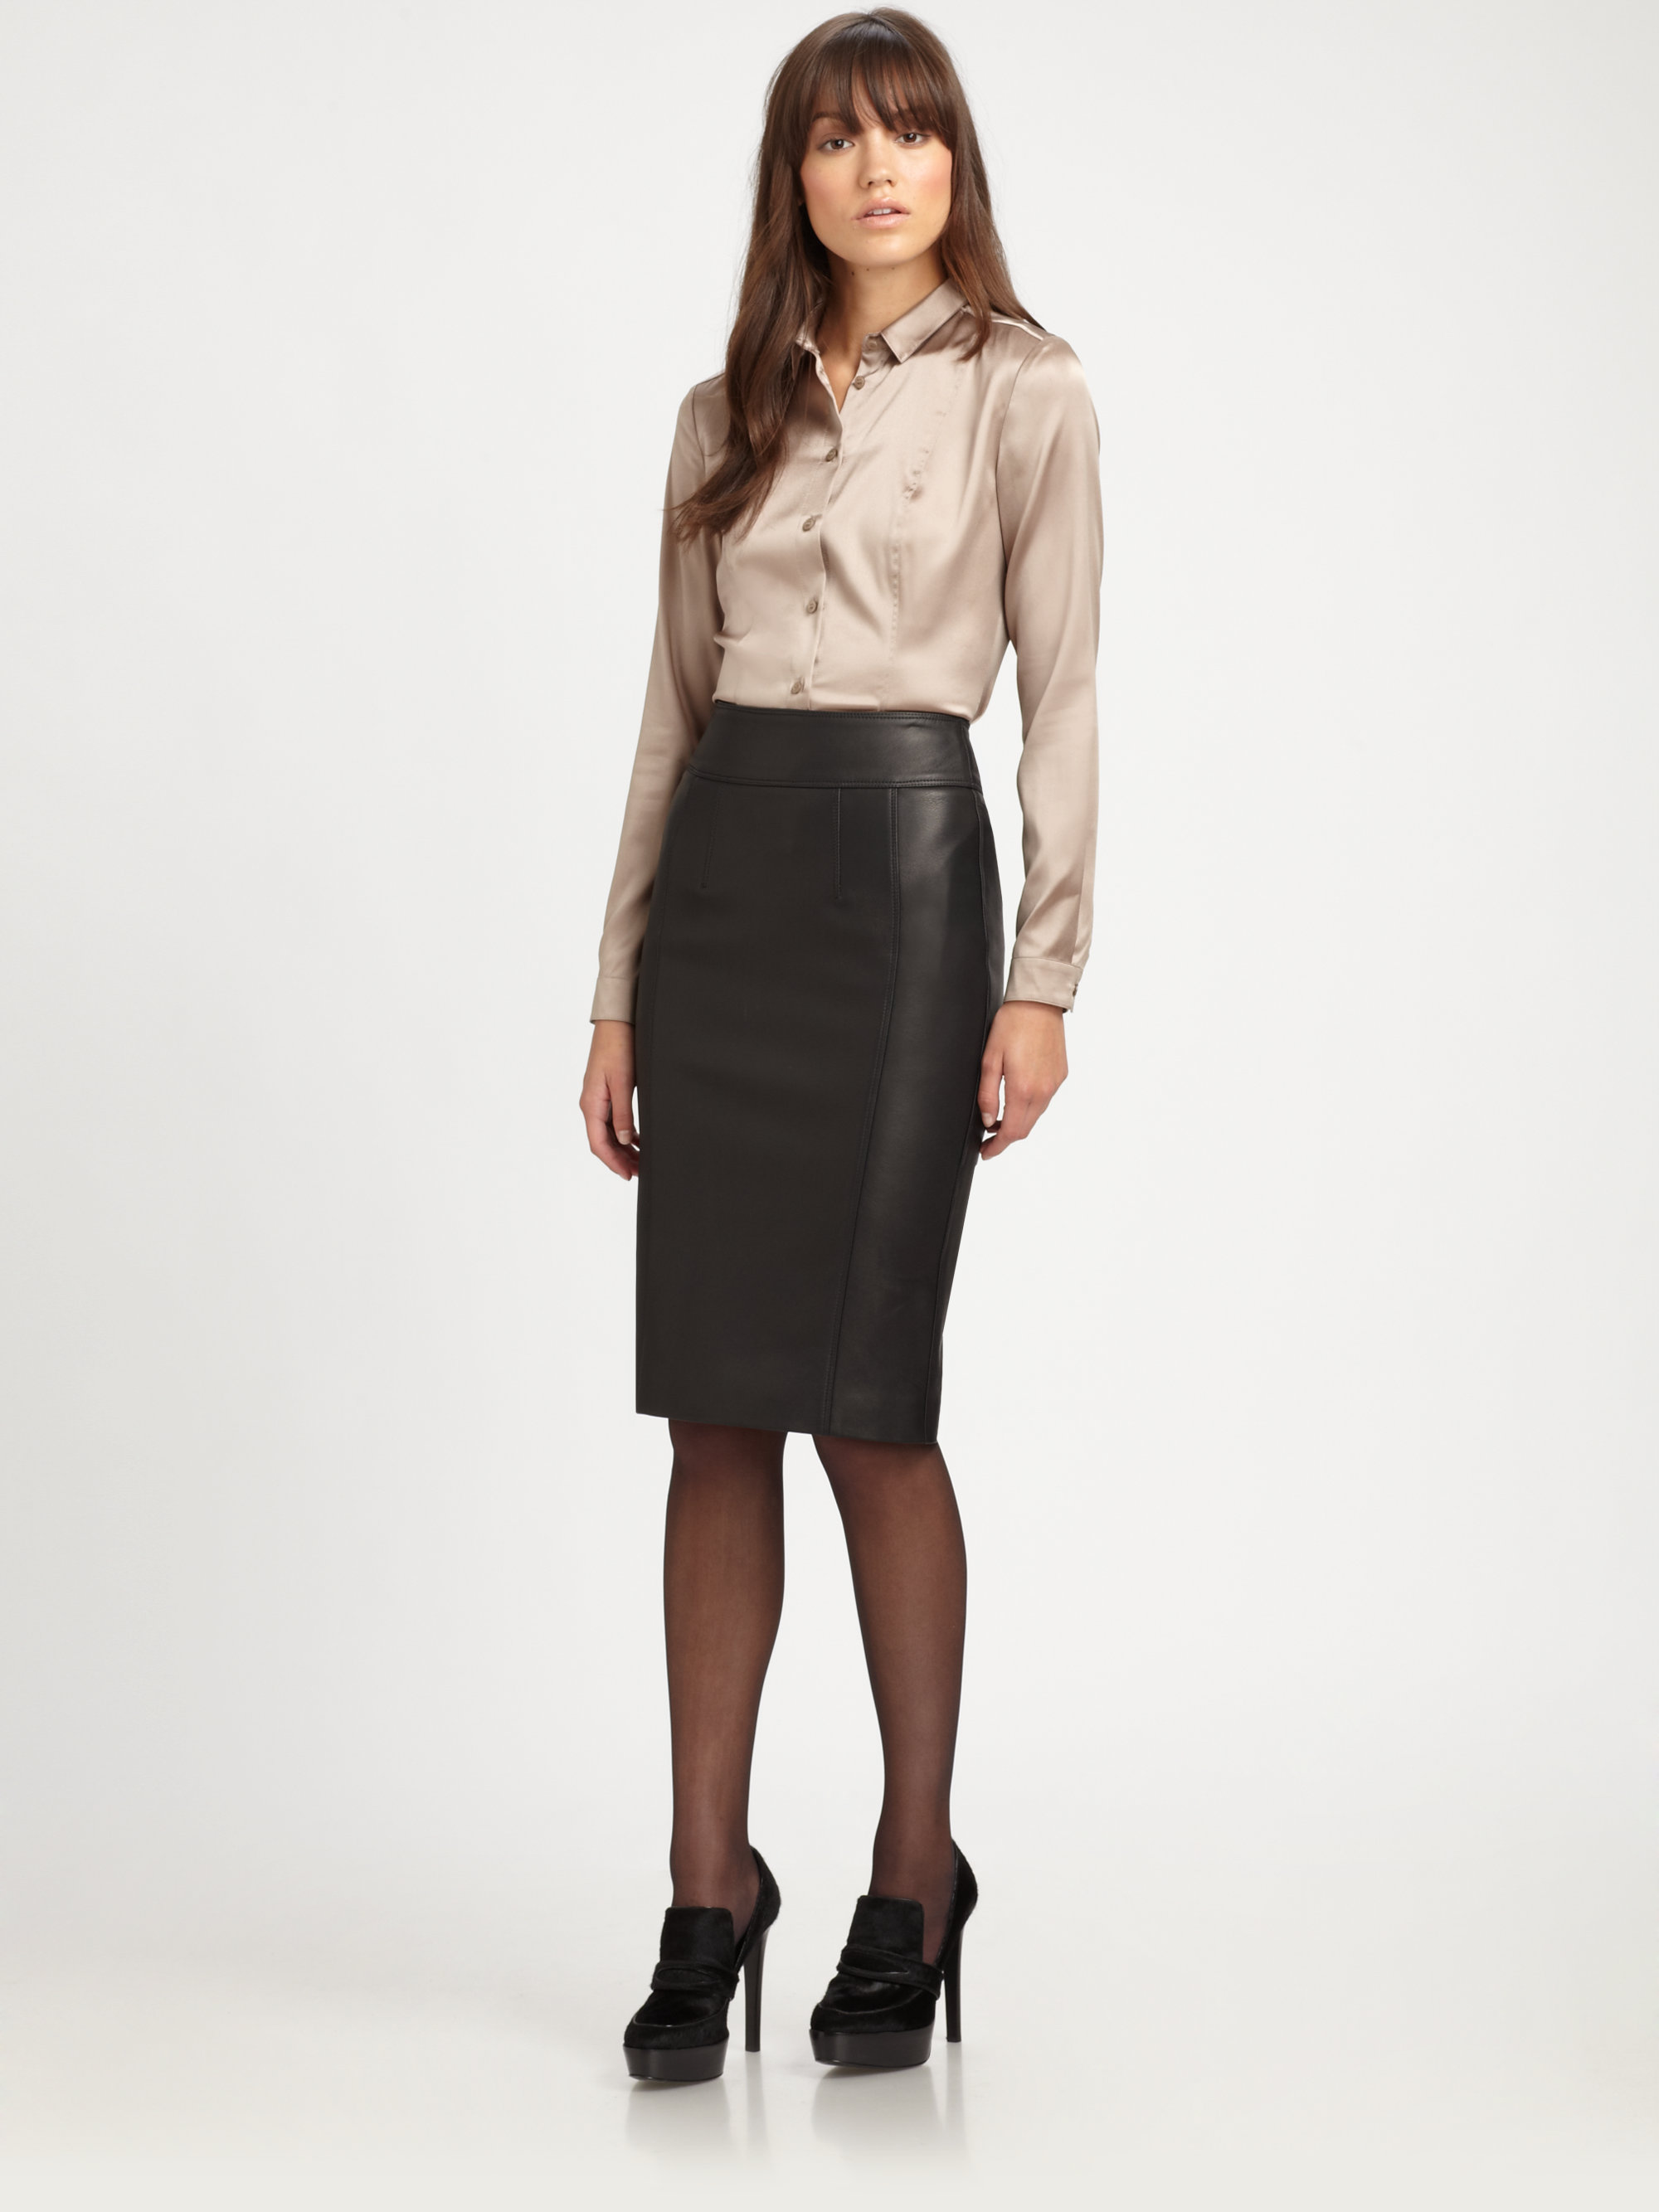 leather pencil skirt gallery crfolzs